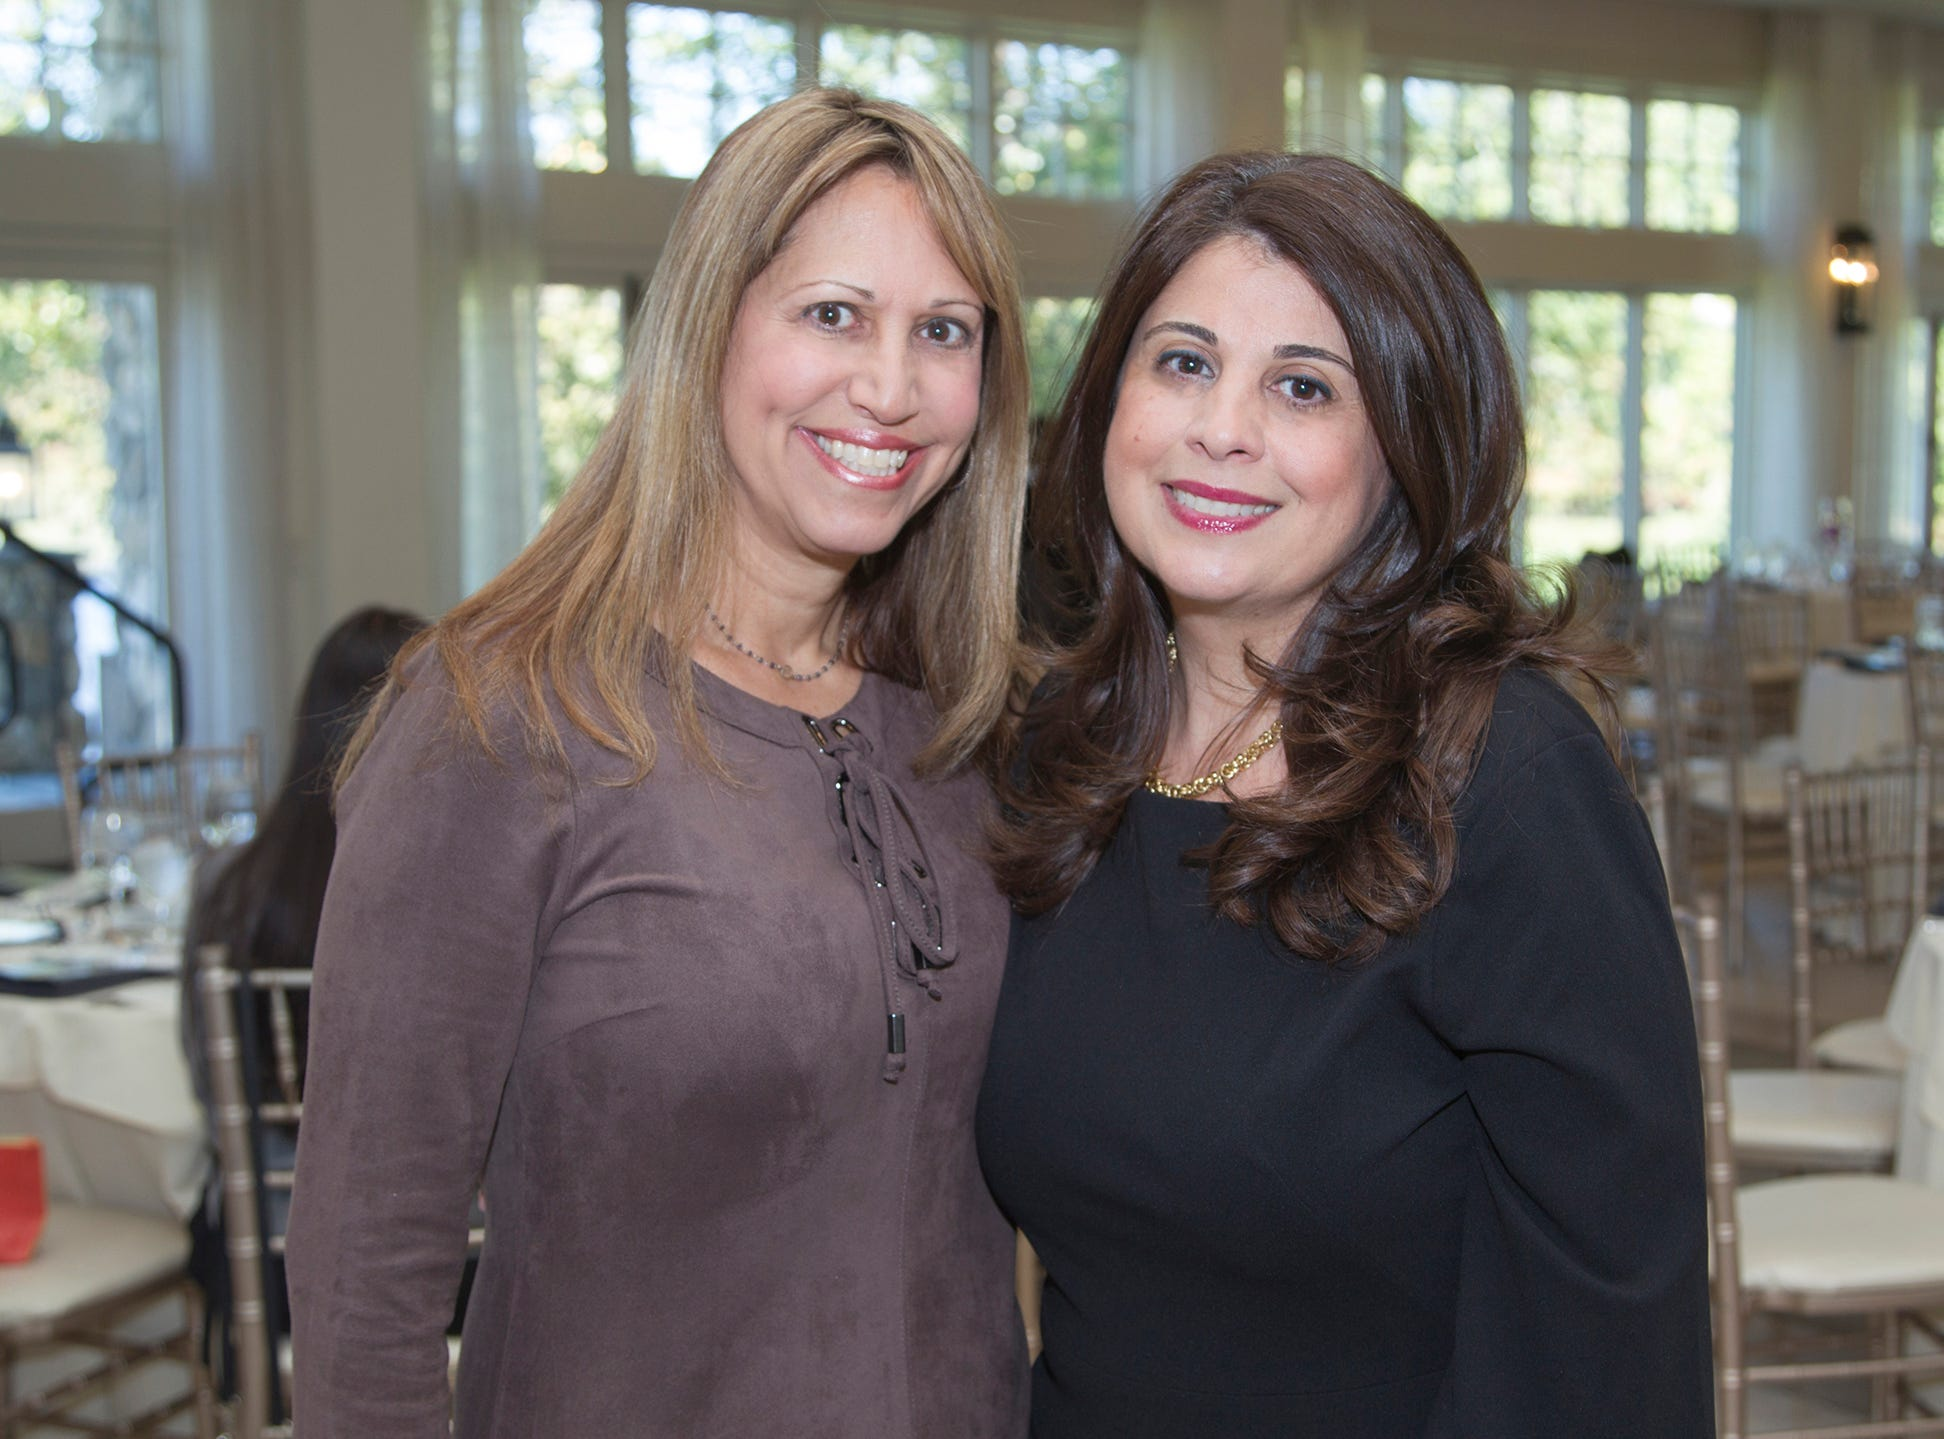 Sharon Chipolone, Hilda Hartounian. Spring Lake Toys Foundation held its 3rd annual fundraising gala luncheon at Indian Trail Club in Franklin Lakes. The luncheon fundraiser raises funds for children with illnesses. 10/18/2018